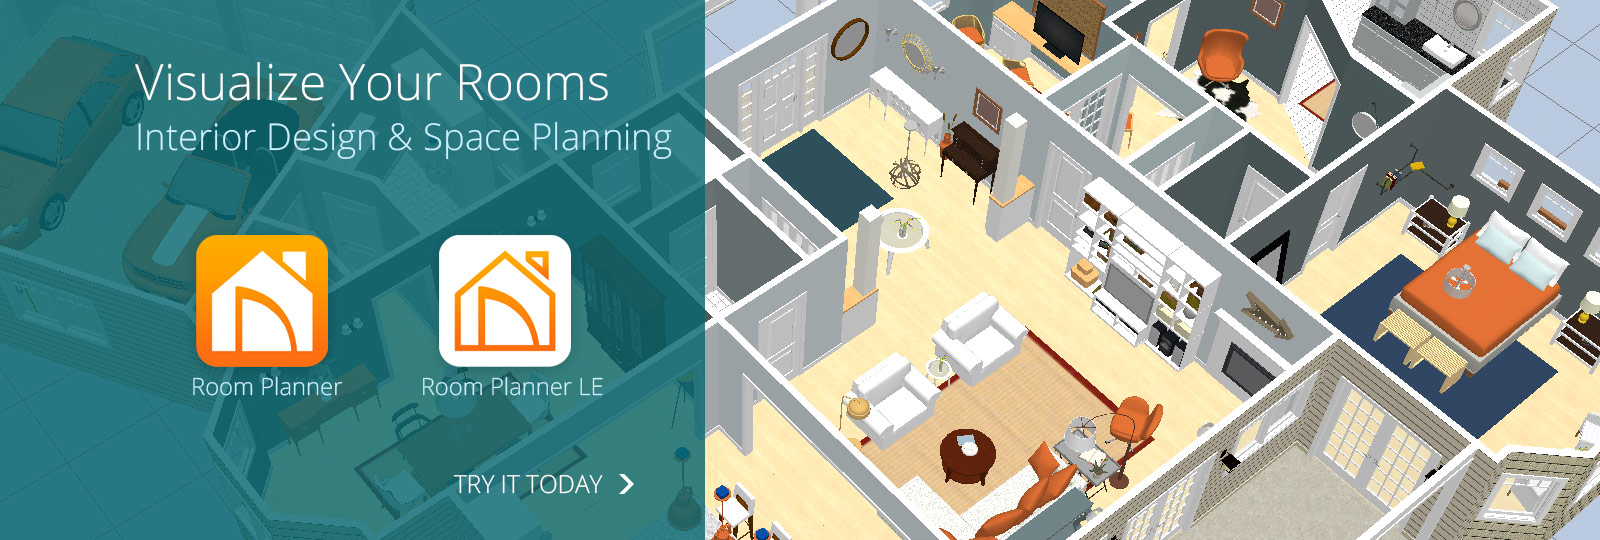 Home Architecture Design Software chief architect home designer software Visualize Your Rooms